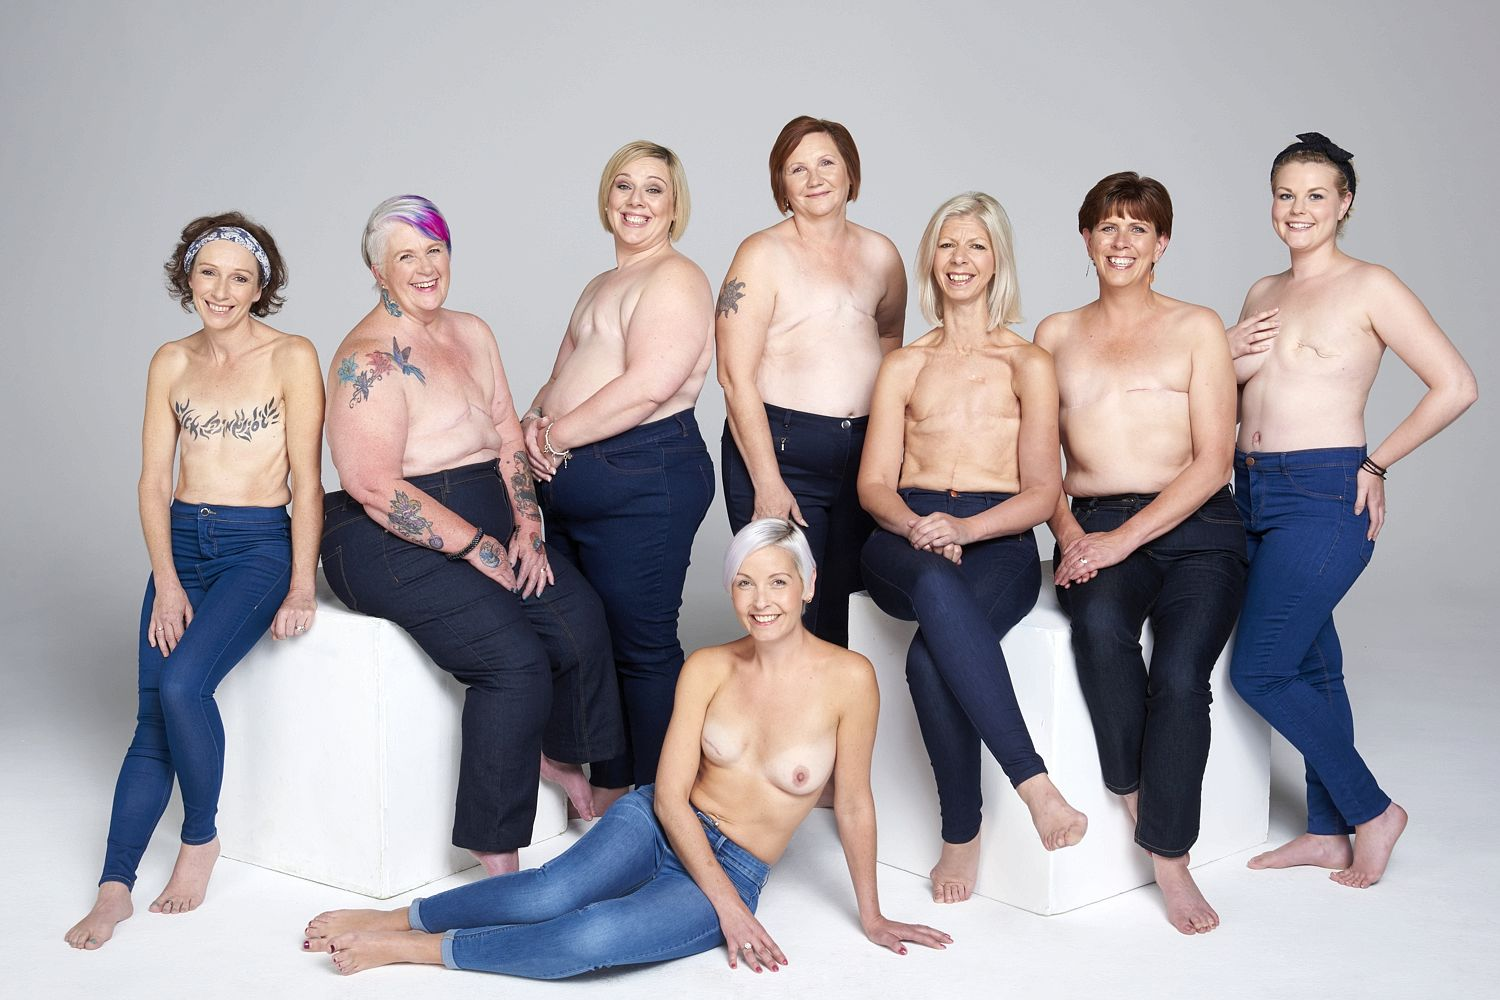 Eight breast cancer sufferers support the #showyourscar campaign